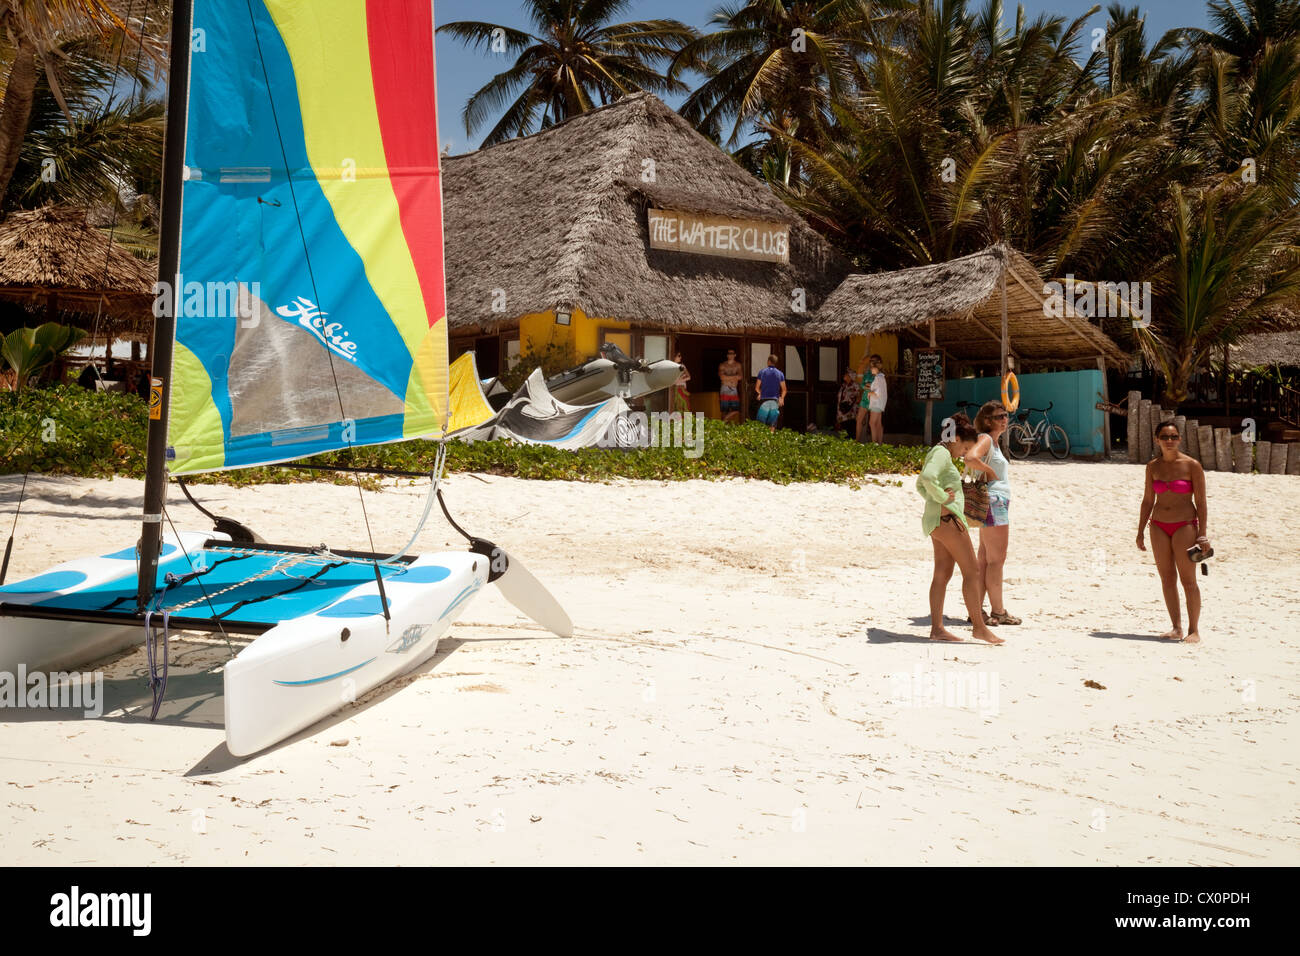 Tourists at the Water Club watersports centre, Breezes Hotel, Bwejuu, Zanzibar Africa - Stock Image